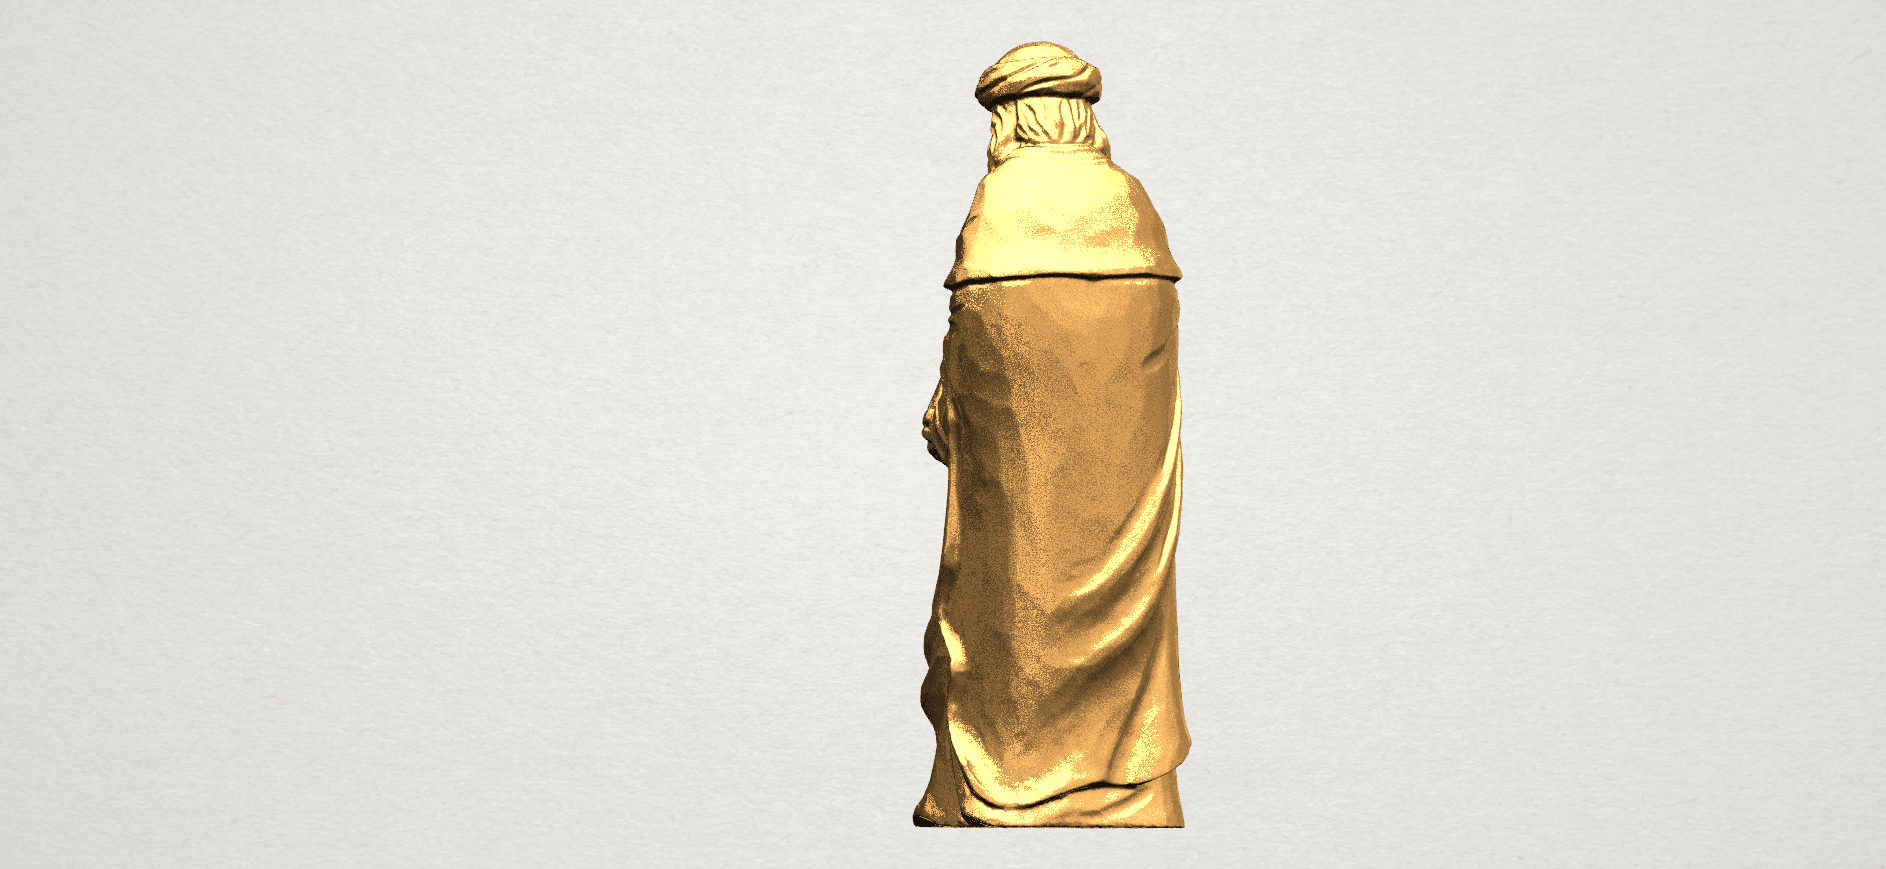 Sculpture of Arabian 88mm - A04.png Download free STL file Sculpture of Arabian • 3D print template, GeorgesNikkei